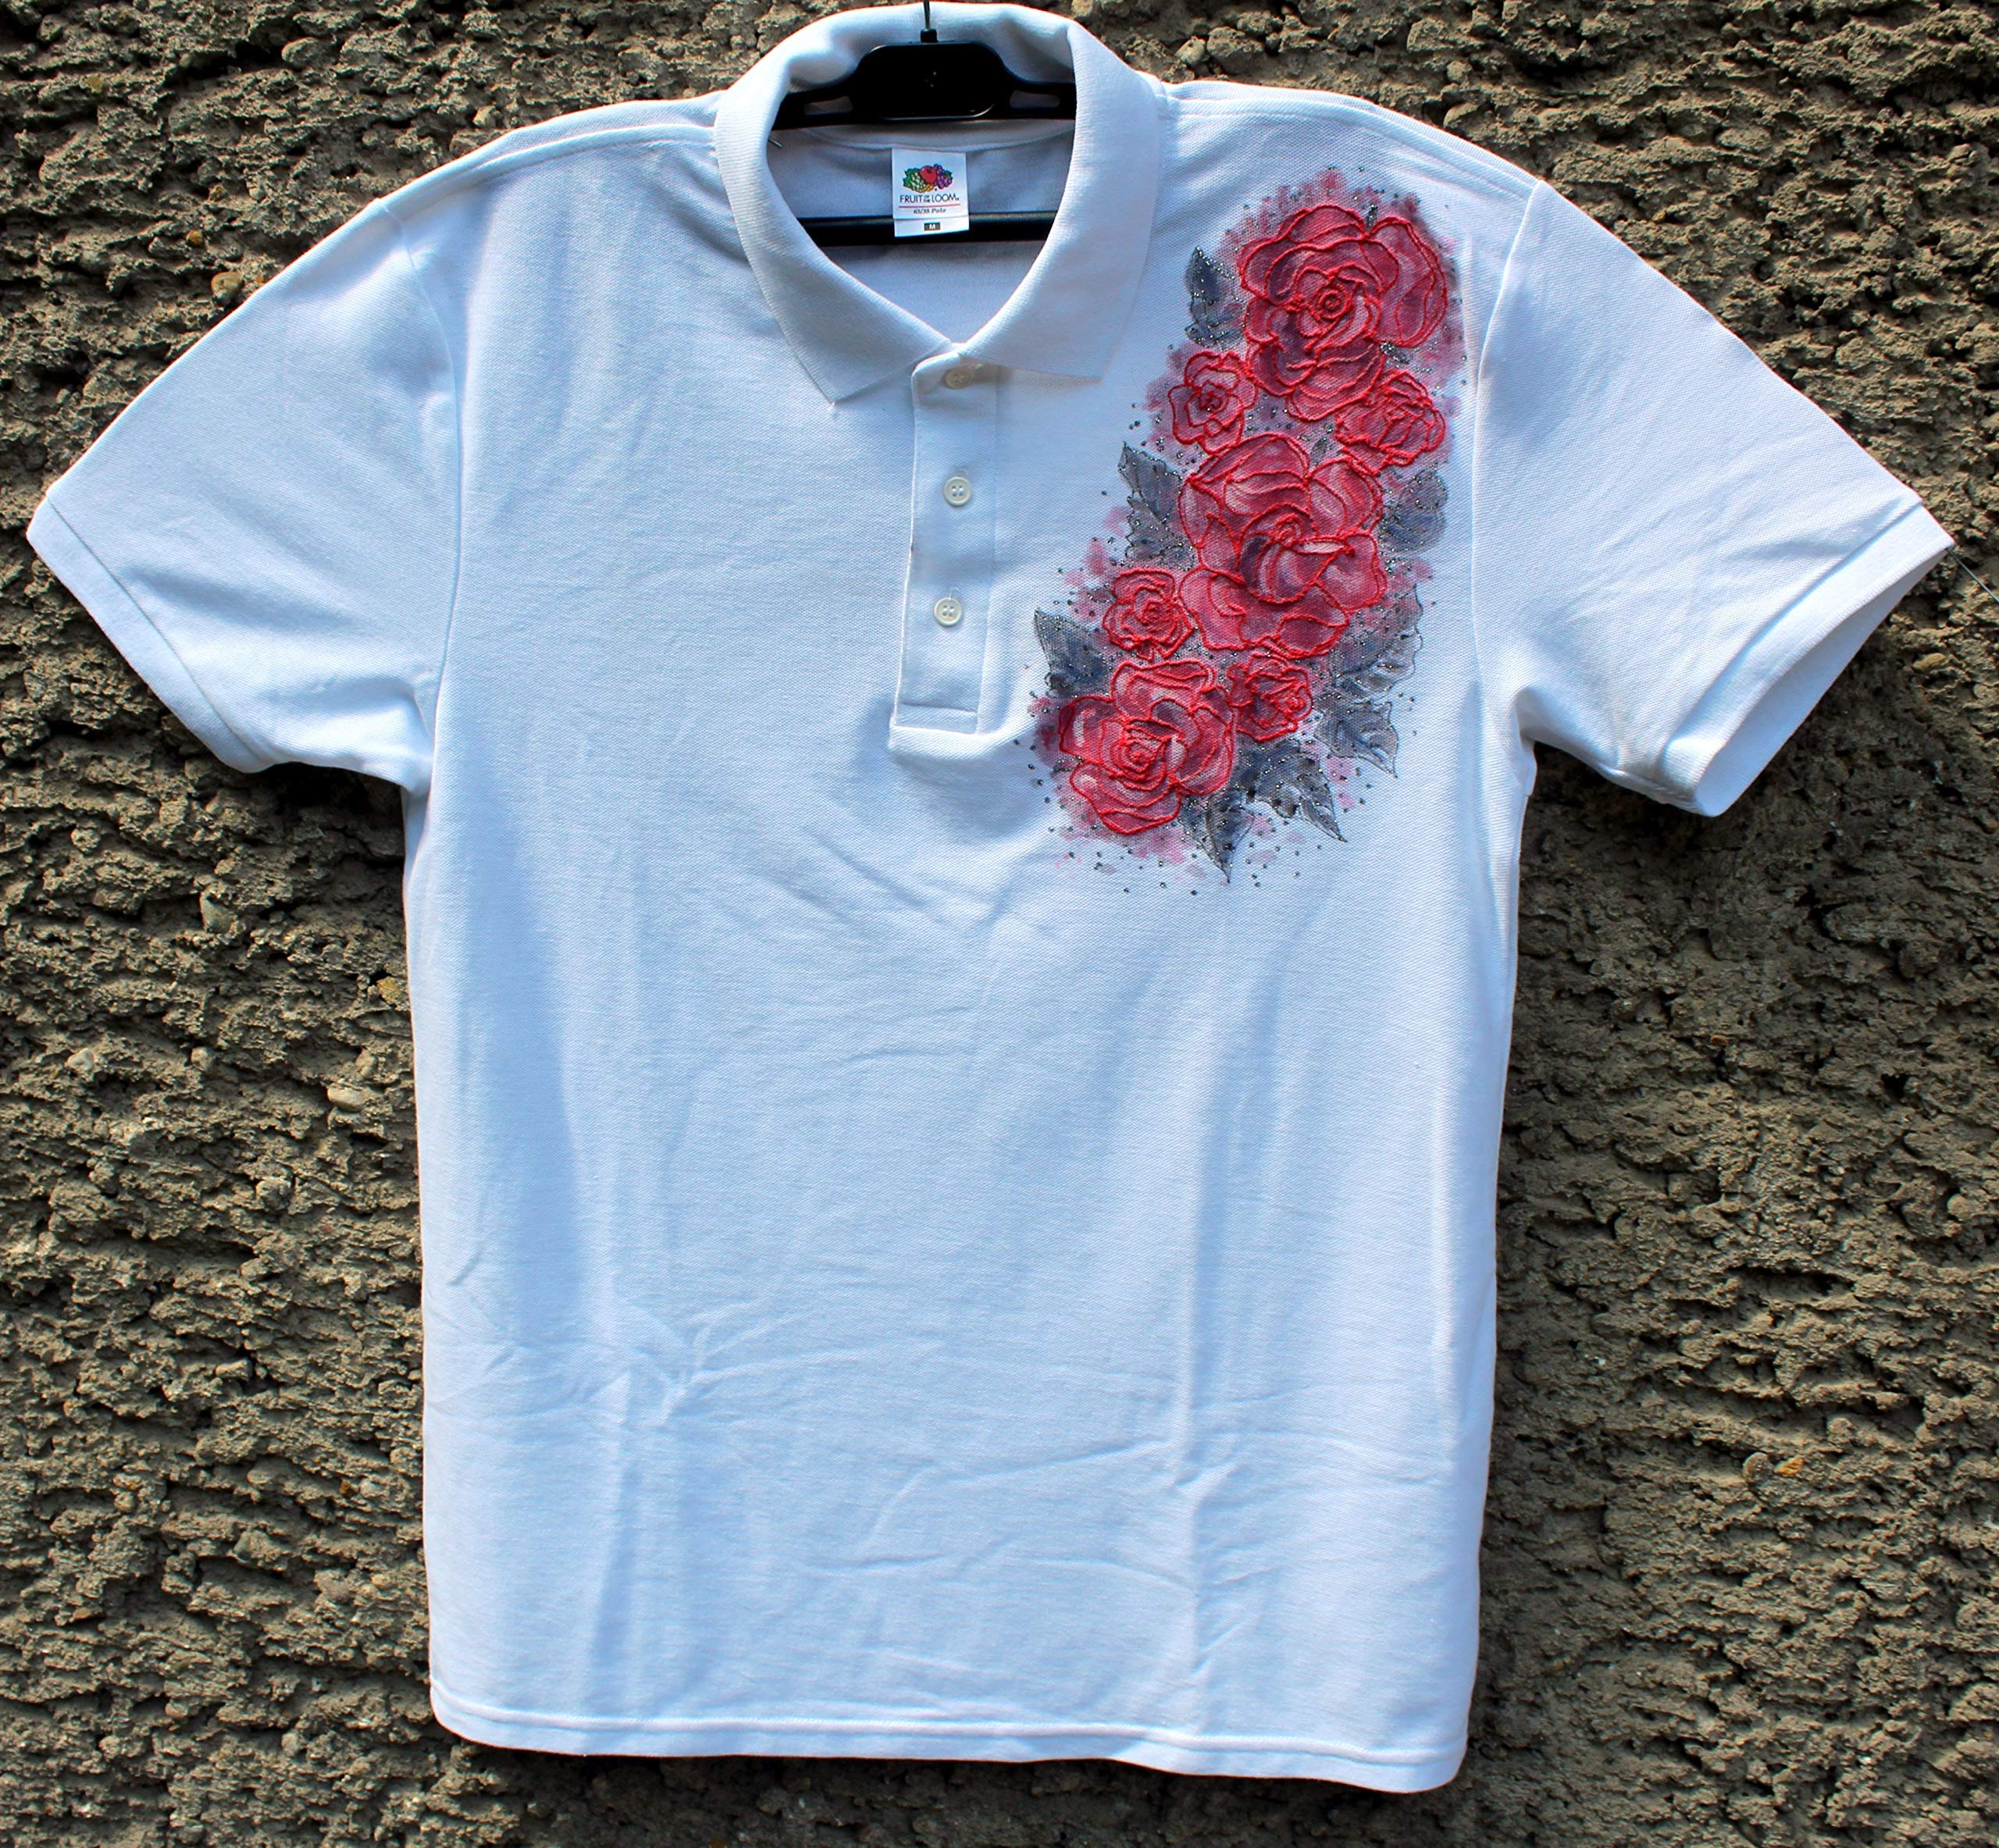 HOT SALE/White Polo T-shirt with Red Roses/Hand Painted Polo T-shirt/Painted Women's Polo/Roses Flower Polo T-shirt/Beach Shirt/Gift Idea/Shirt Polo''Fruit of the Loom''/size M 65/35.